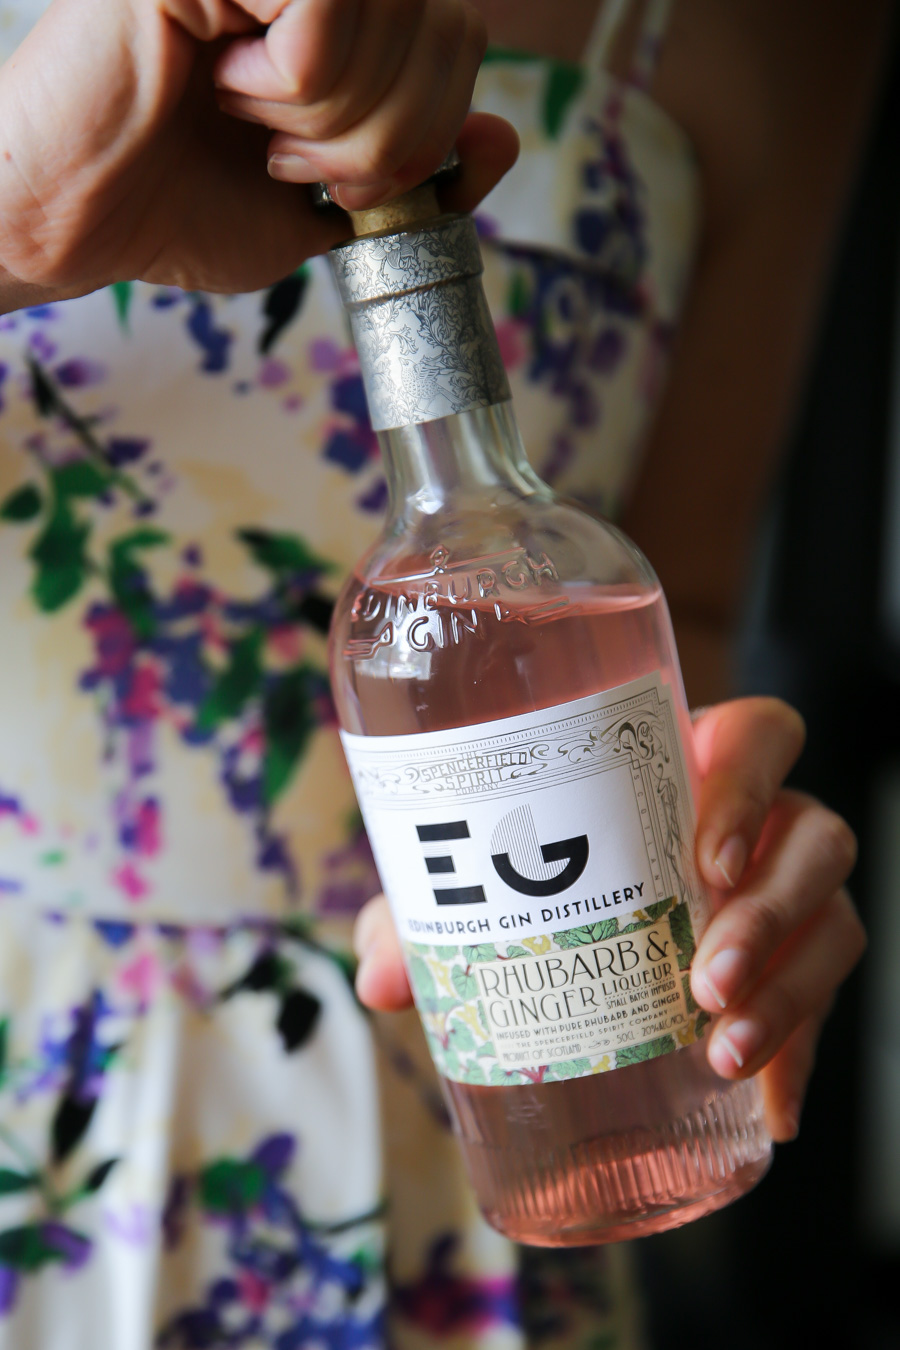 Edinburgh Gin Rhubarb Recipe - Whiskey Cocktails for Summer